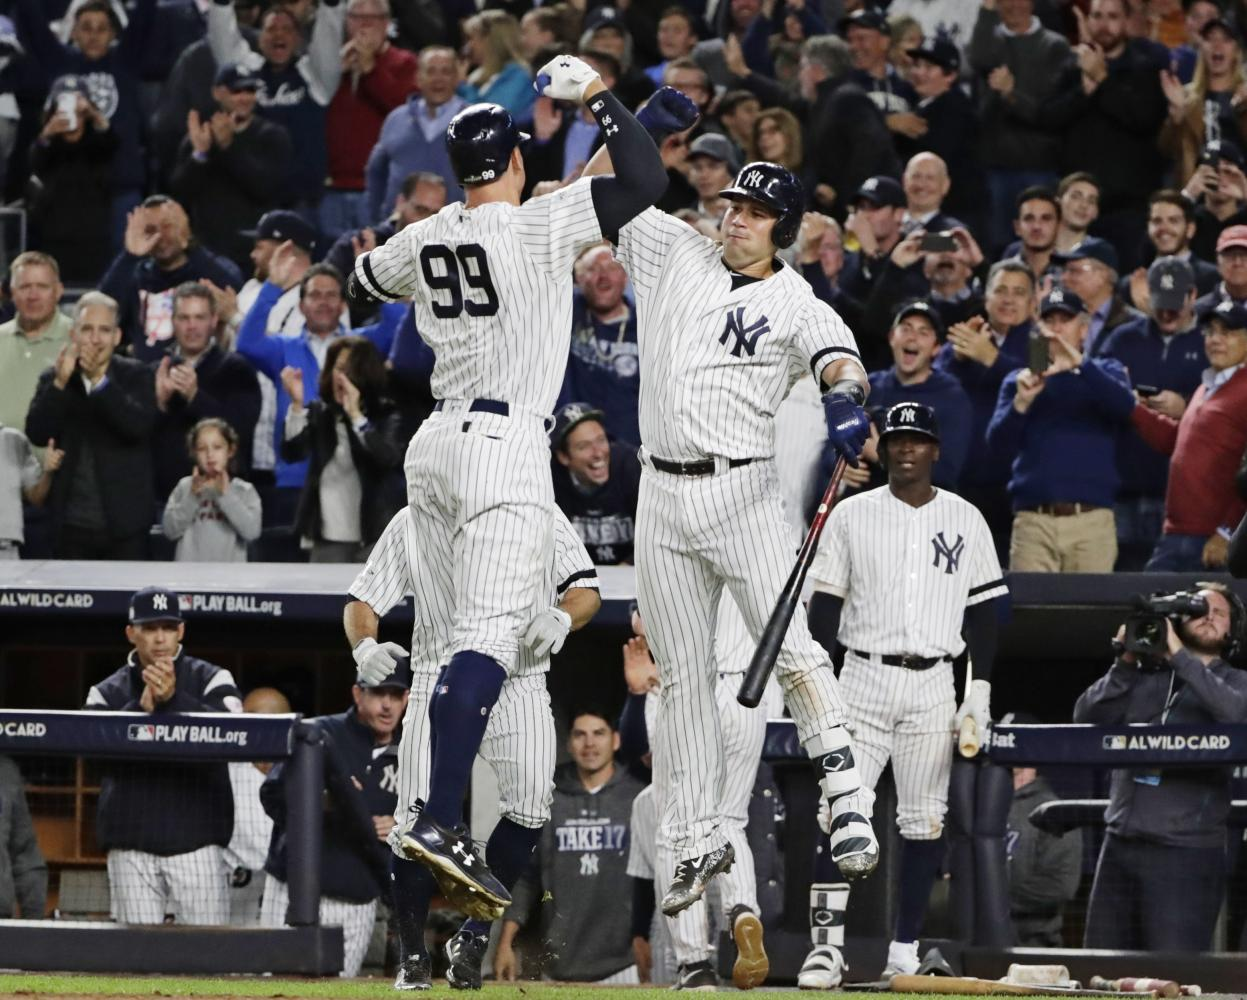 Aaron Judge (l.) celebrates with Gary Sanchez after hitting a two-run home run. (FRANK FRANKLIN II/AP)  *NY Daily News